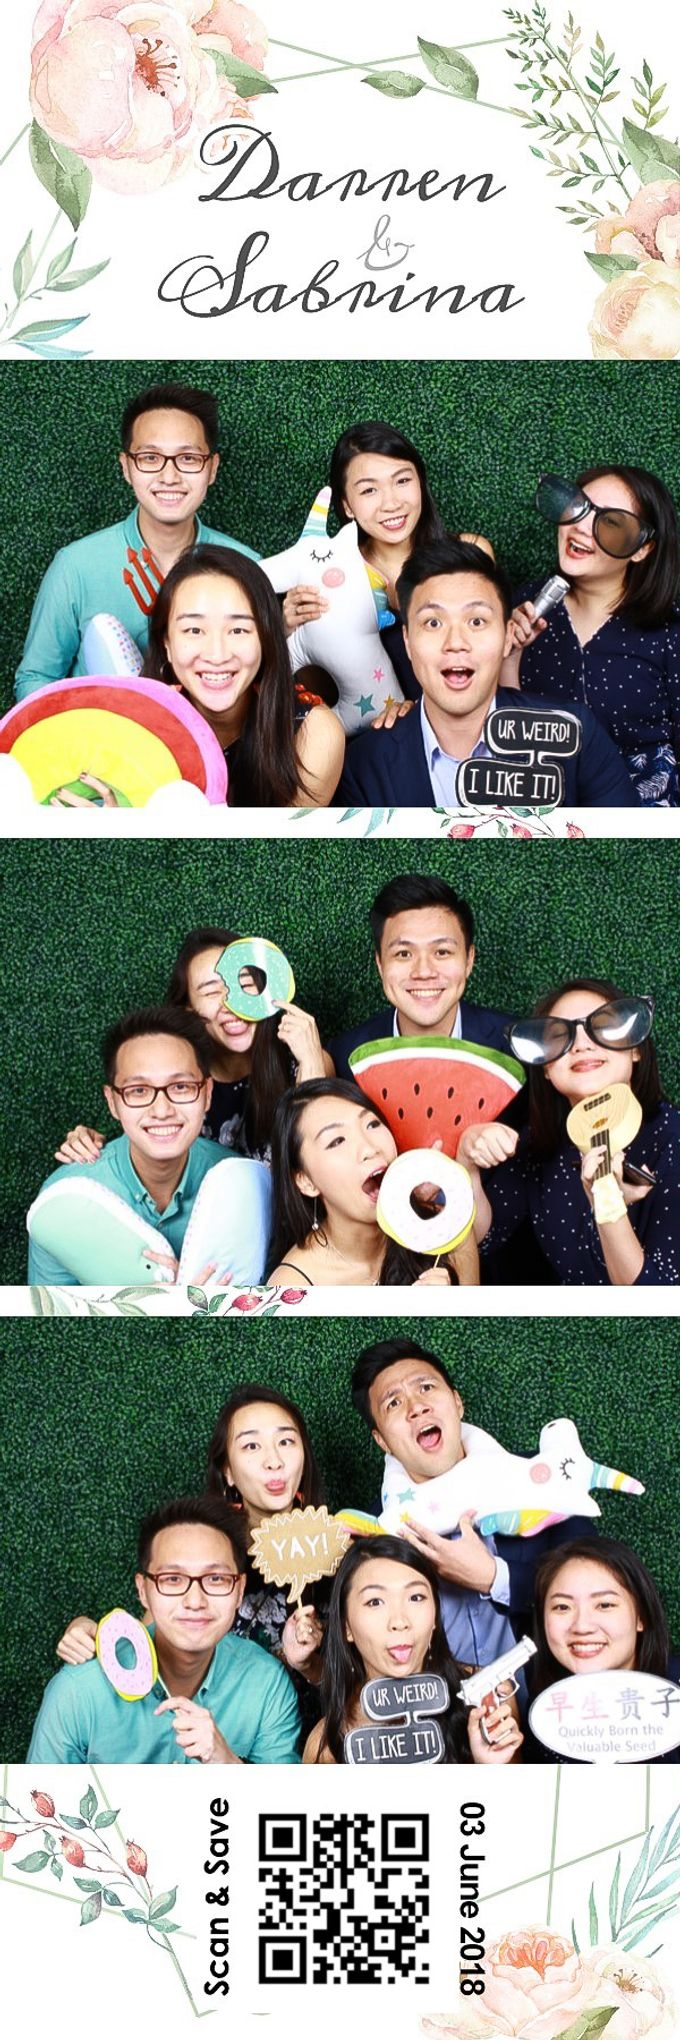 Darren & Sabrina Wedding Photo Booth by Cloud Booth - 004